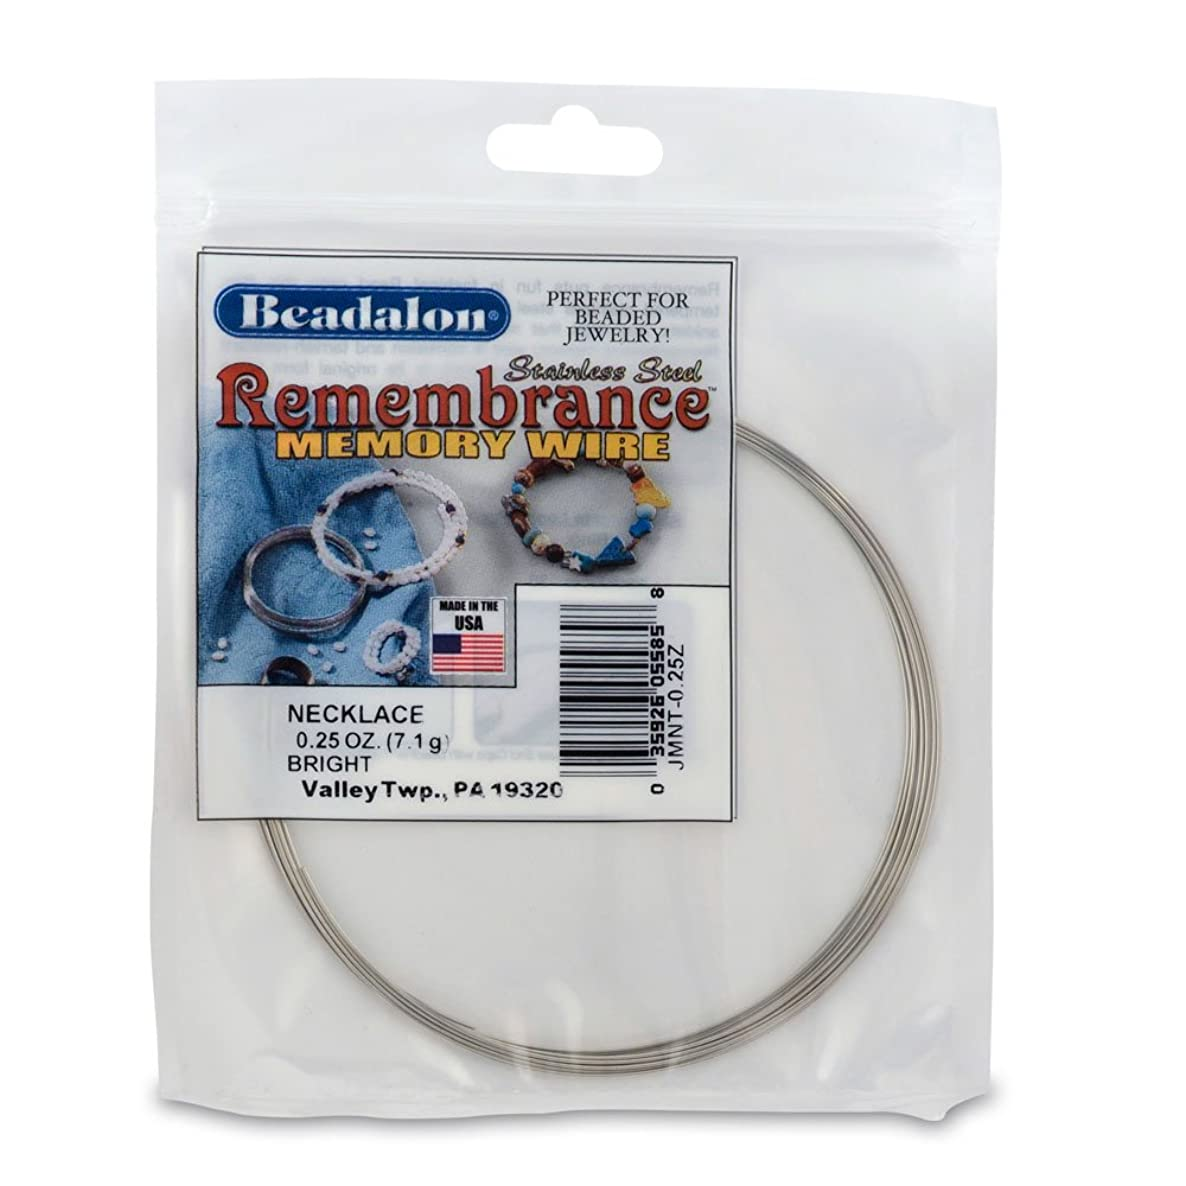 Beadalon JMNT-0 Remembrance Memory Wire Necklace .62mm 0-1/4-Ounce/Pkg, Bright/Approx, 9 Loops